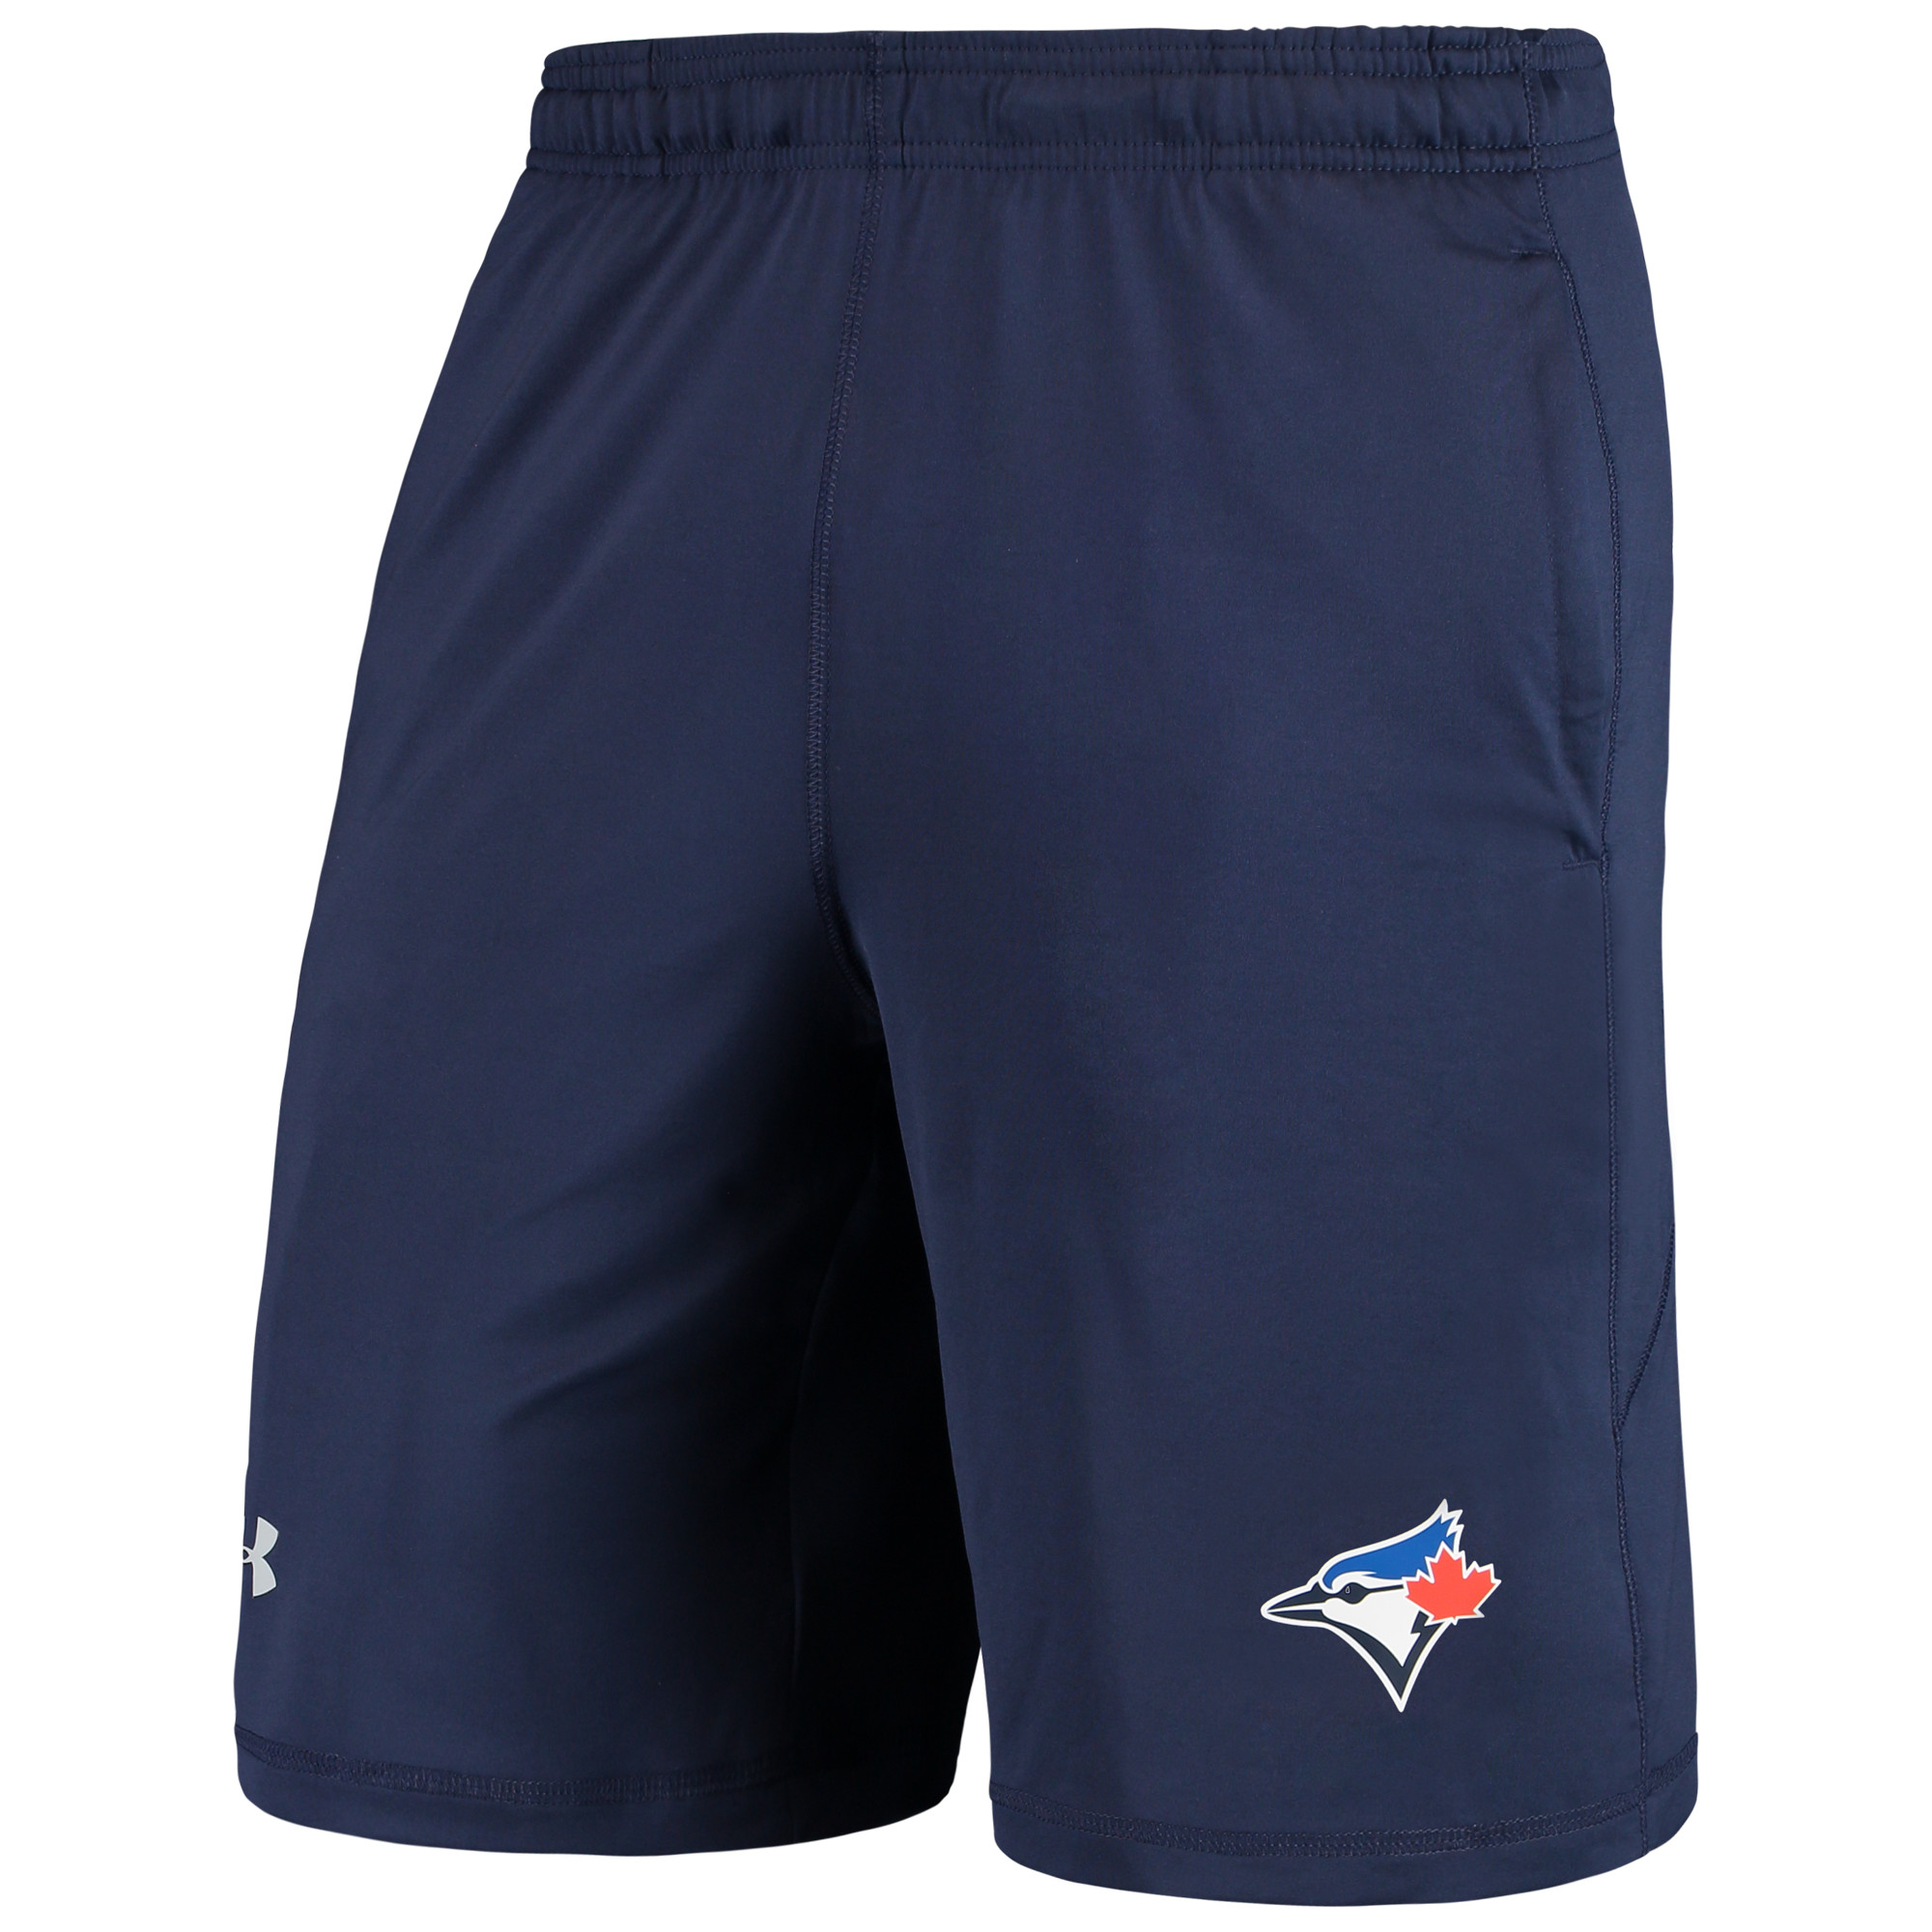 Toronto Blue Jays Under Armour Raid Left Leg Performance Shorts - Navy